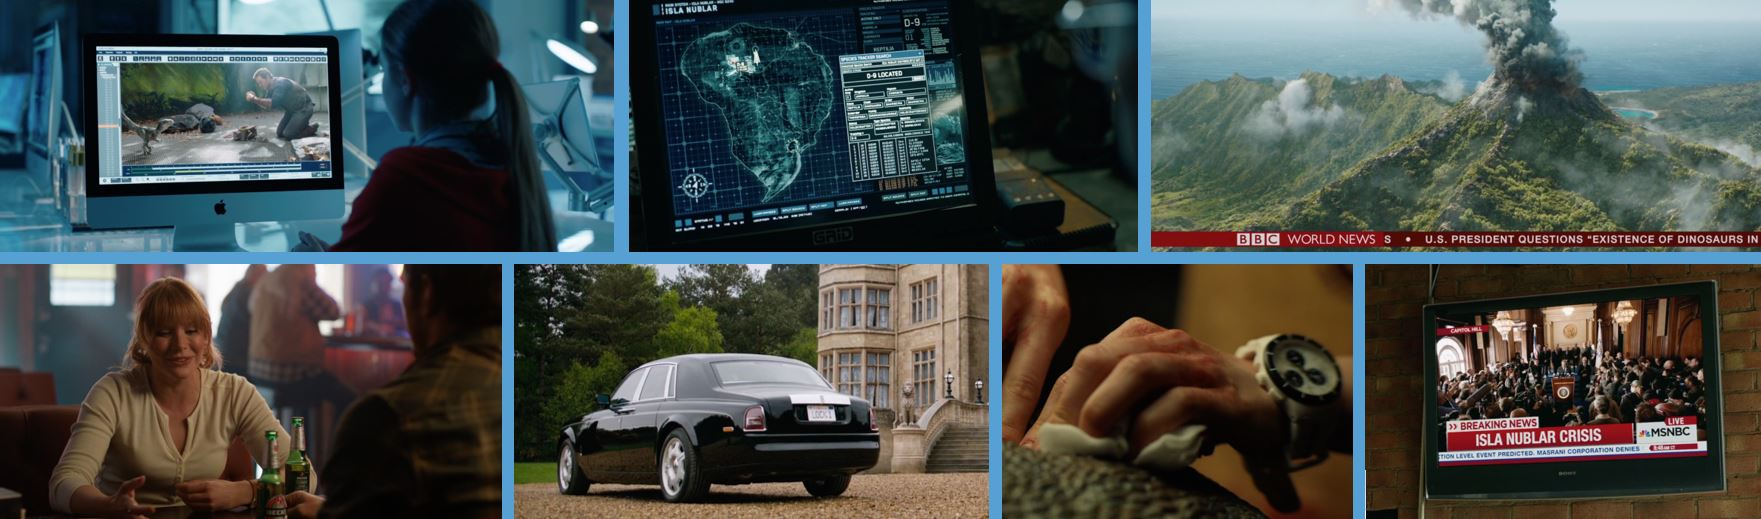 2018 product placement concave brand Tracking most brand filled movies branded entertainment marketing apple BBC Jurassic world fallen kingdom Grid becks beck's rolls royce rolls-royce swatch sony msnbc